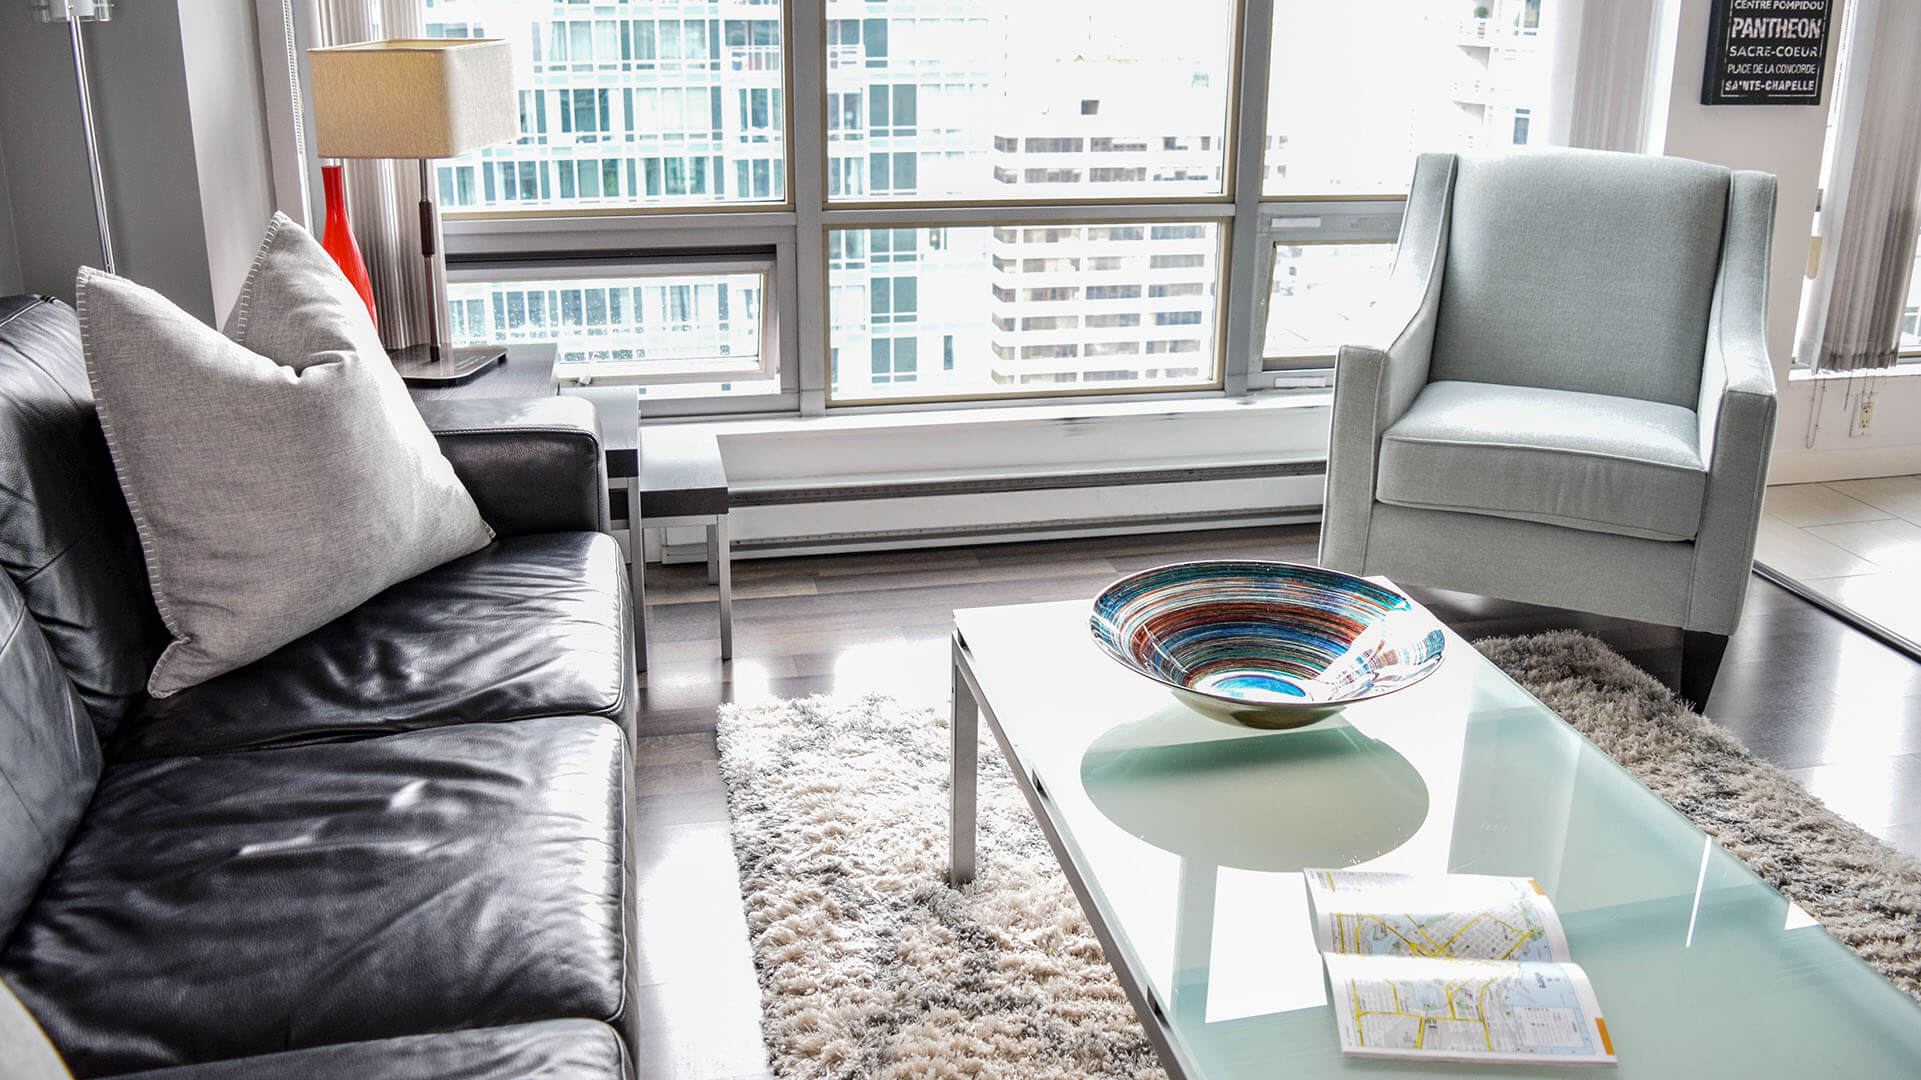 Photo of fully furnished apartment #2904 at The Residences on Georgia, 1288 West Georgia Street, Vancouver, BC